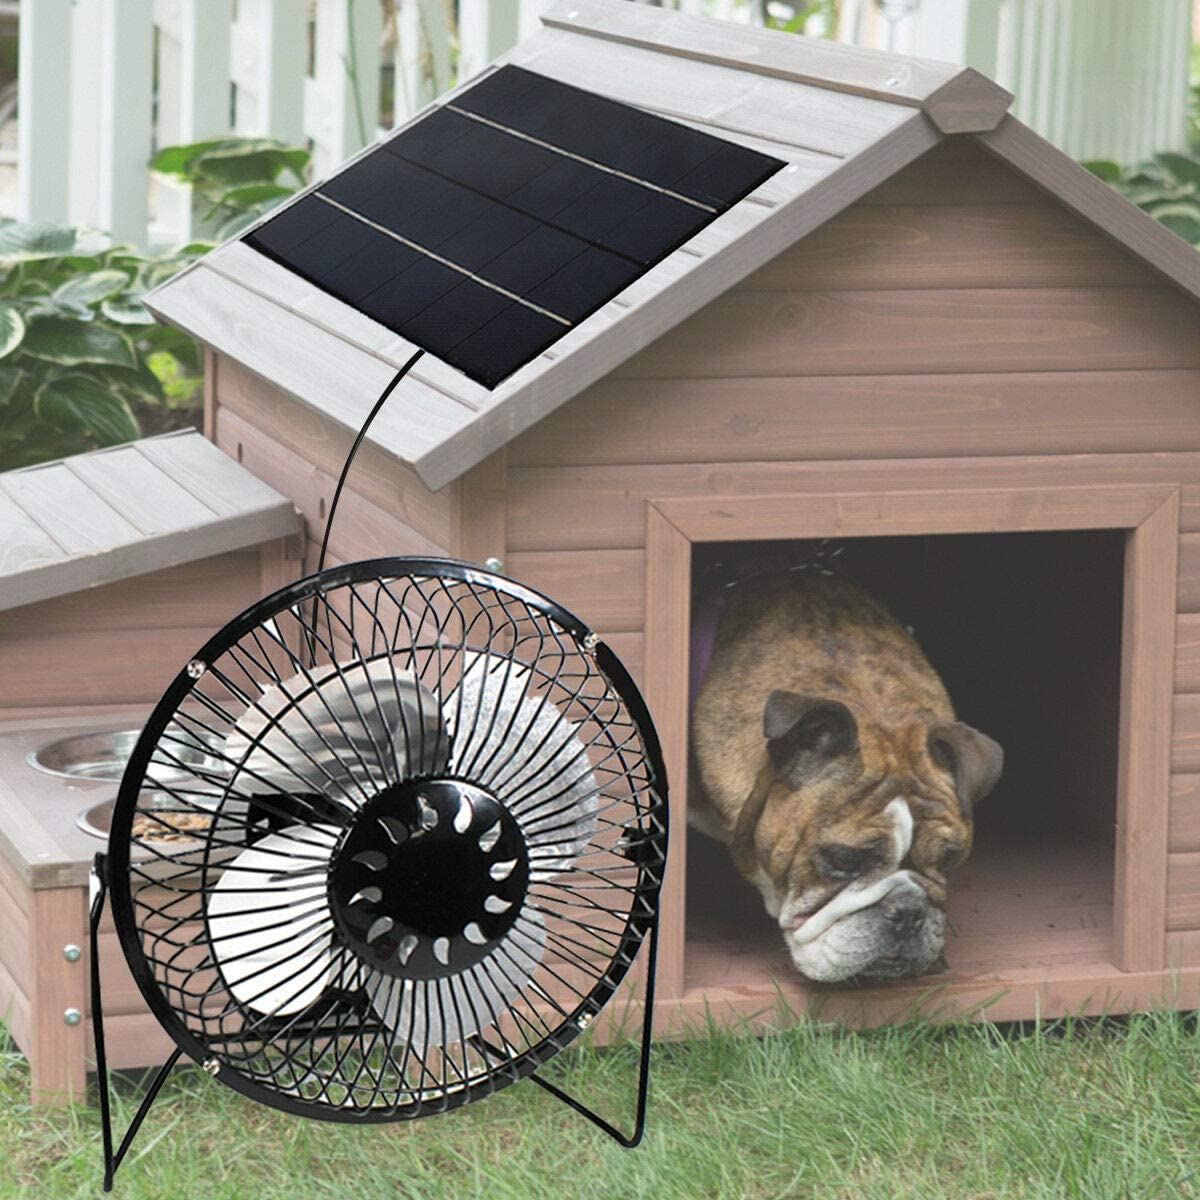 Solar Powered Fan 10W 4 inch Free Energy Green Energy Power Ventilator for Greenhouse Motorhome House Chicken House Outdoor Home Cooling by ShareTime (10W-USB)